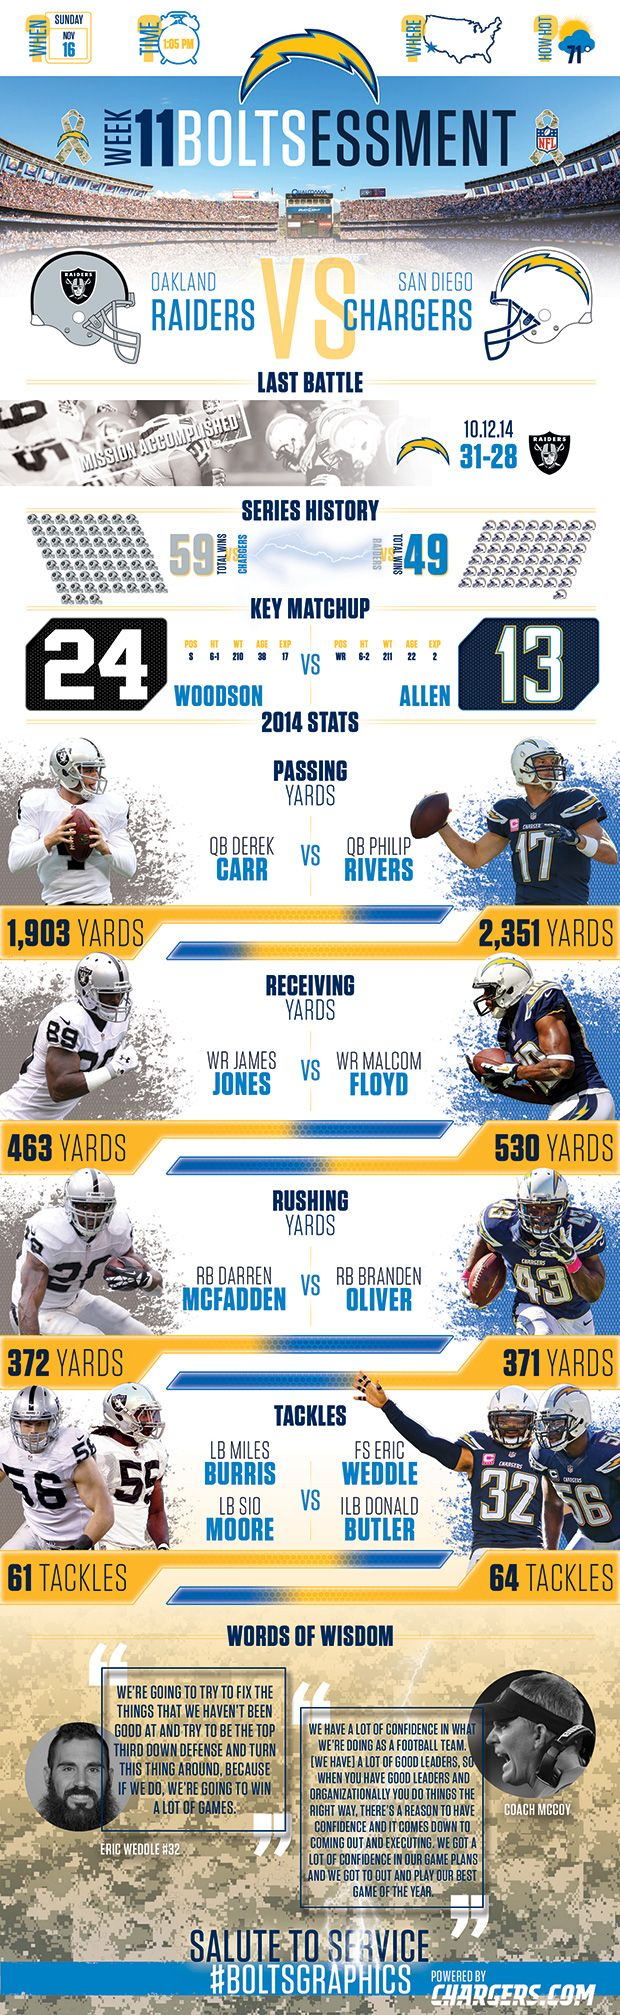 Matchup Infographic: Raiders vs. Chargers